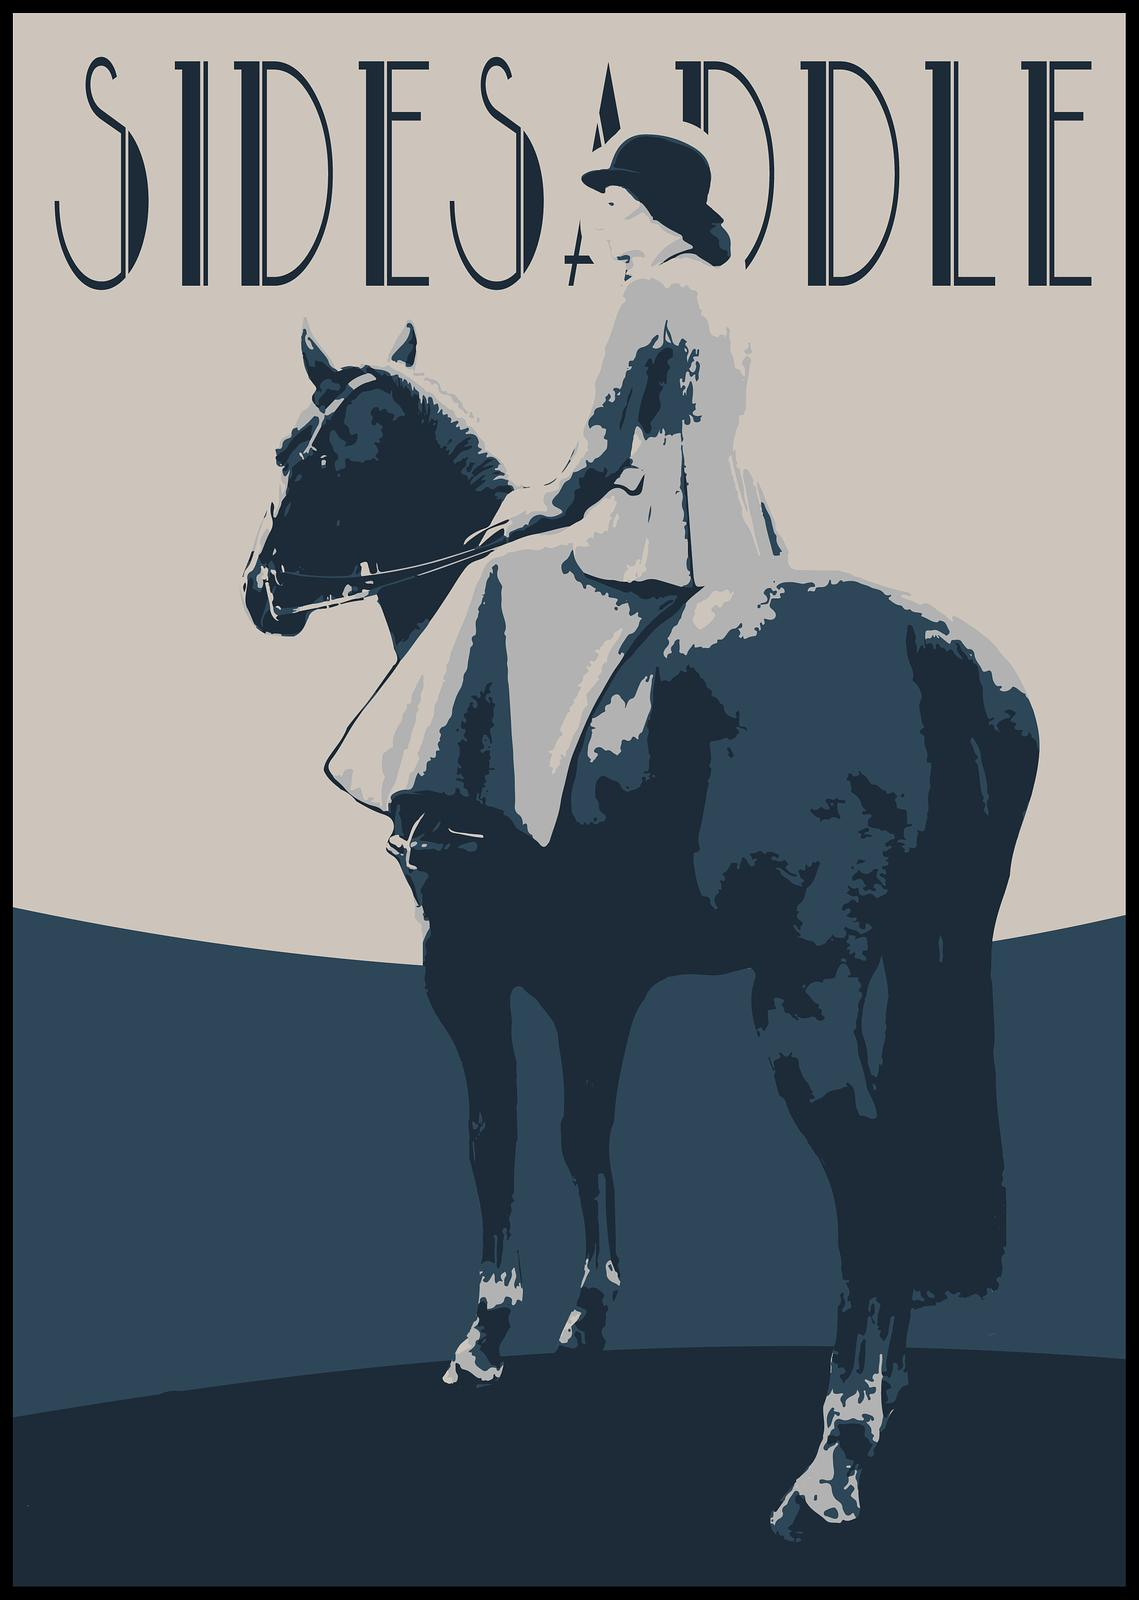 Sidesaddle Retro Vintage Inspired Graphic Design Print